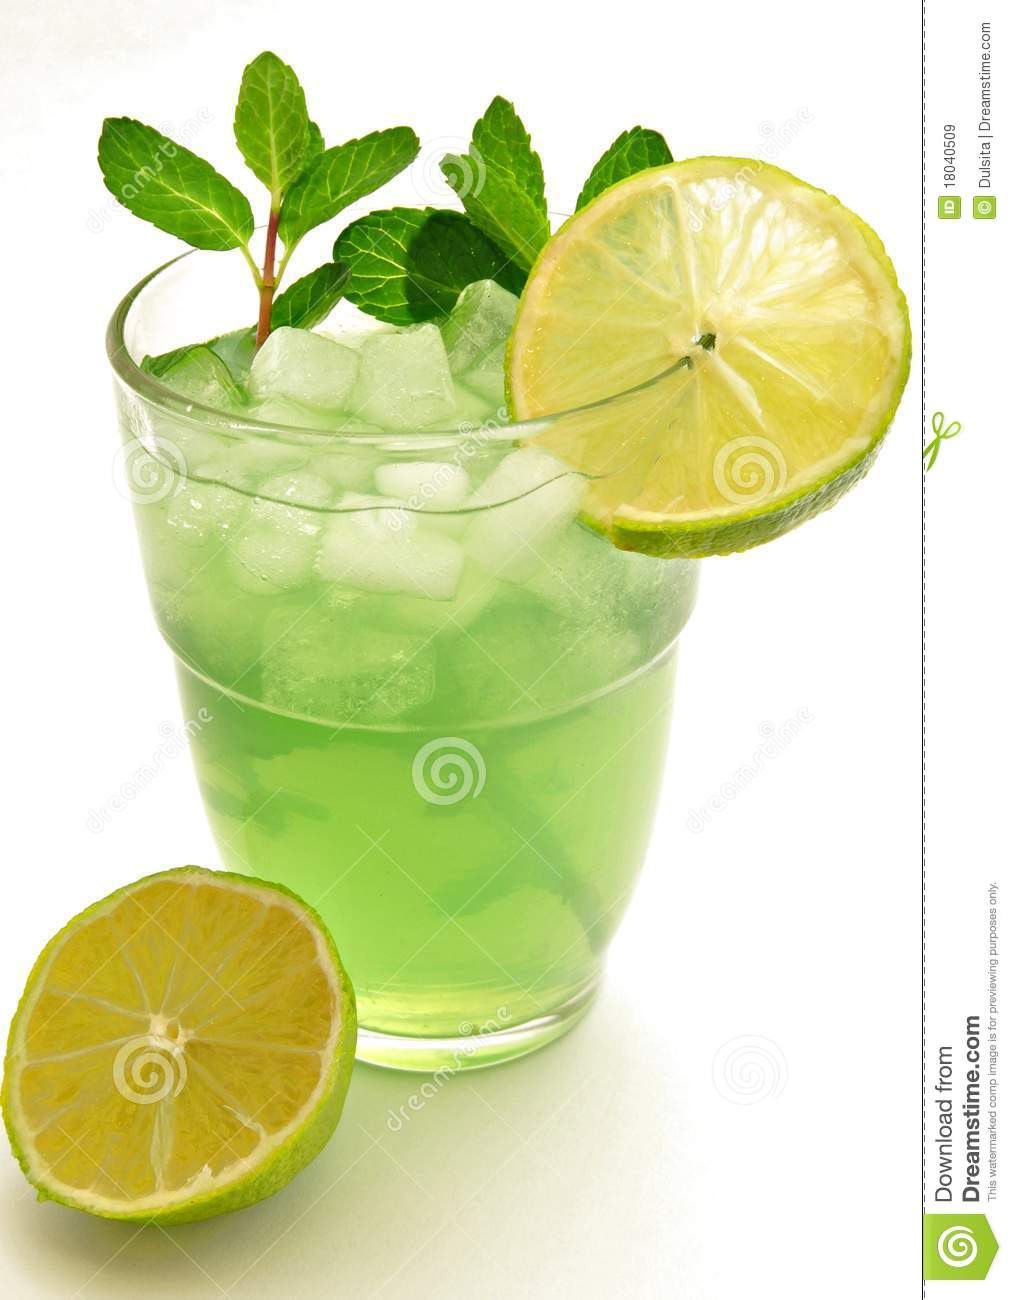 Lime Soda Royalty Free Stock Images - Image: 18040509